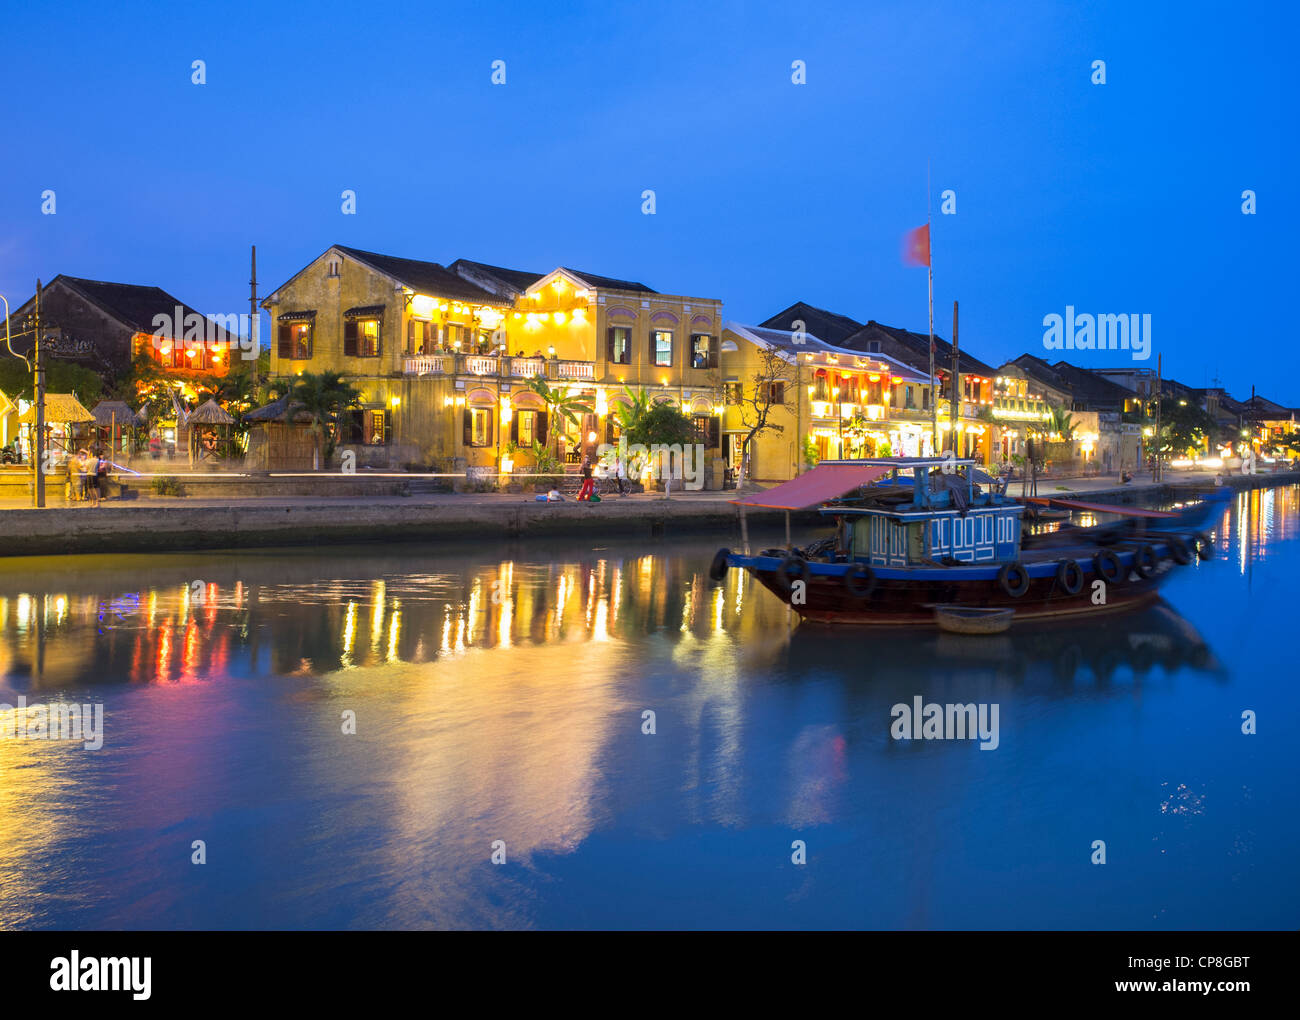 Evening view of historic old town of Hoian a UNESCO World Heritage site in Vietnam - Stock Image